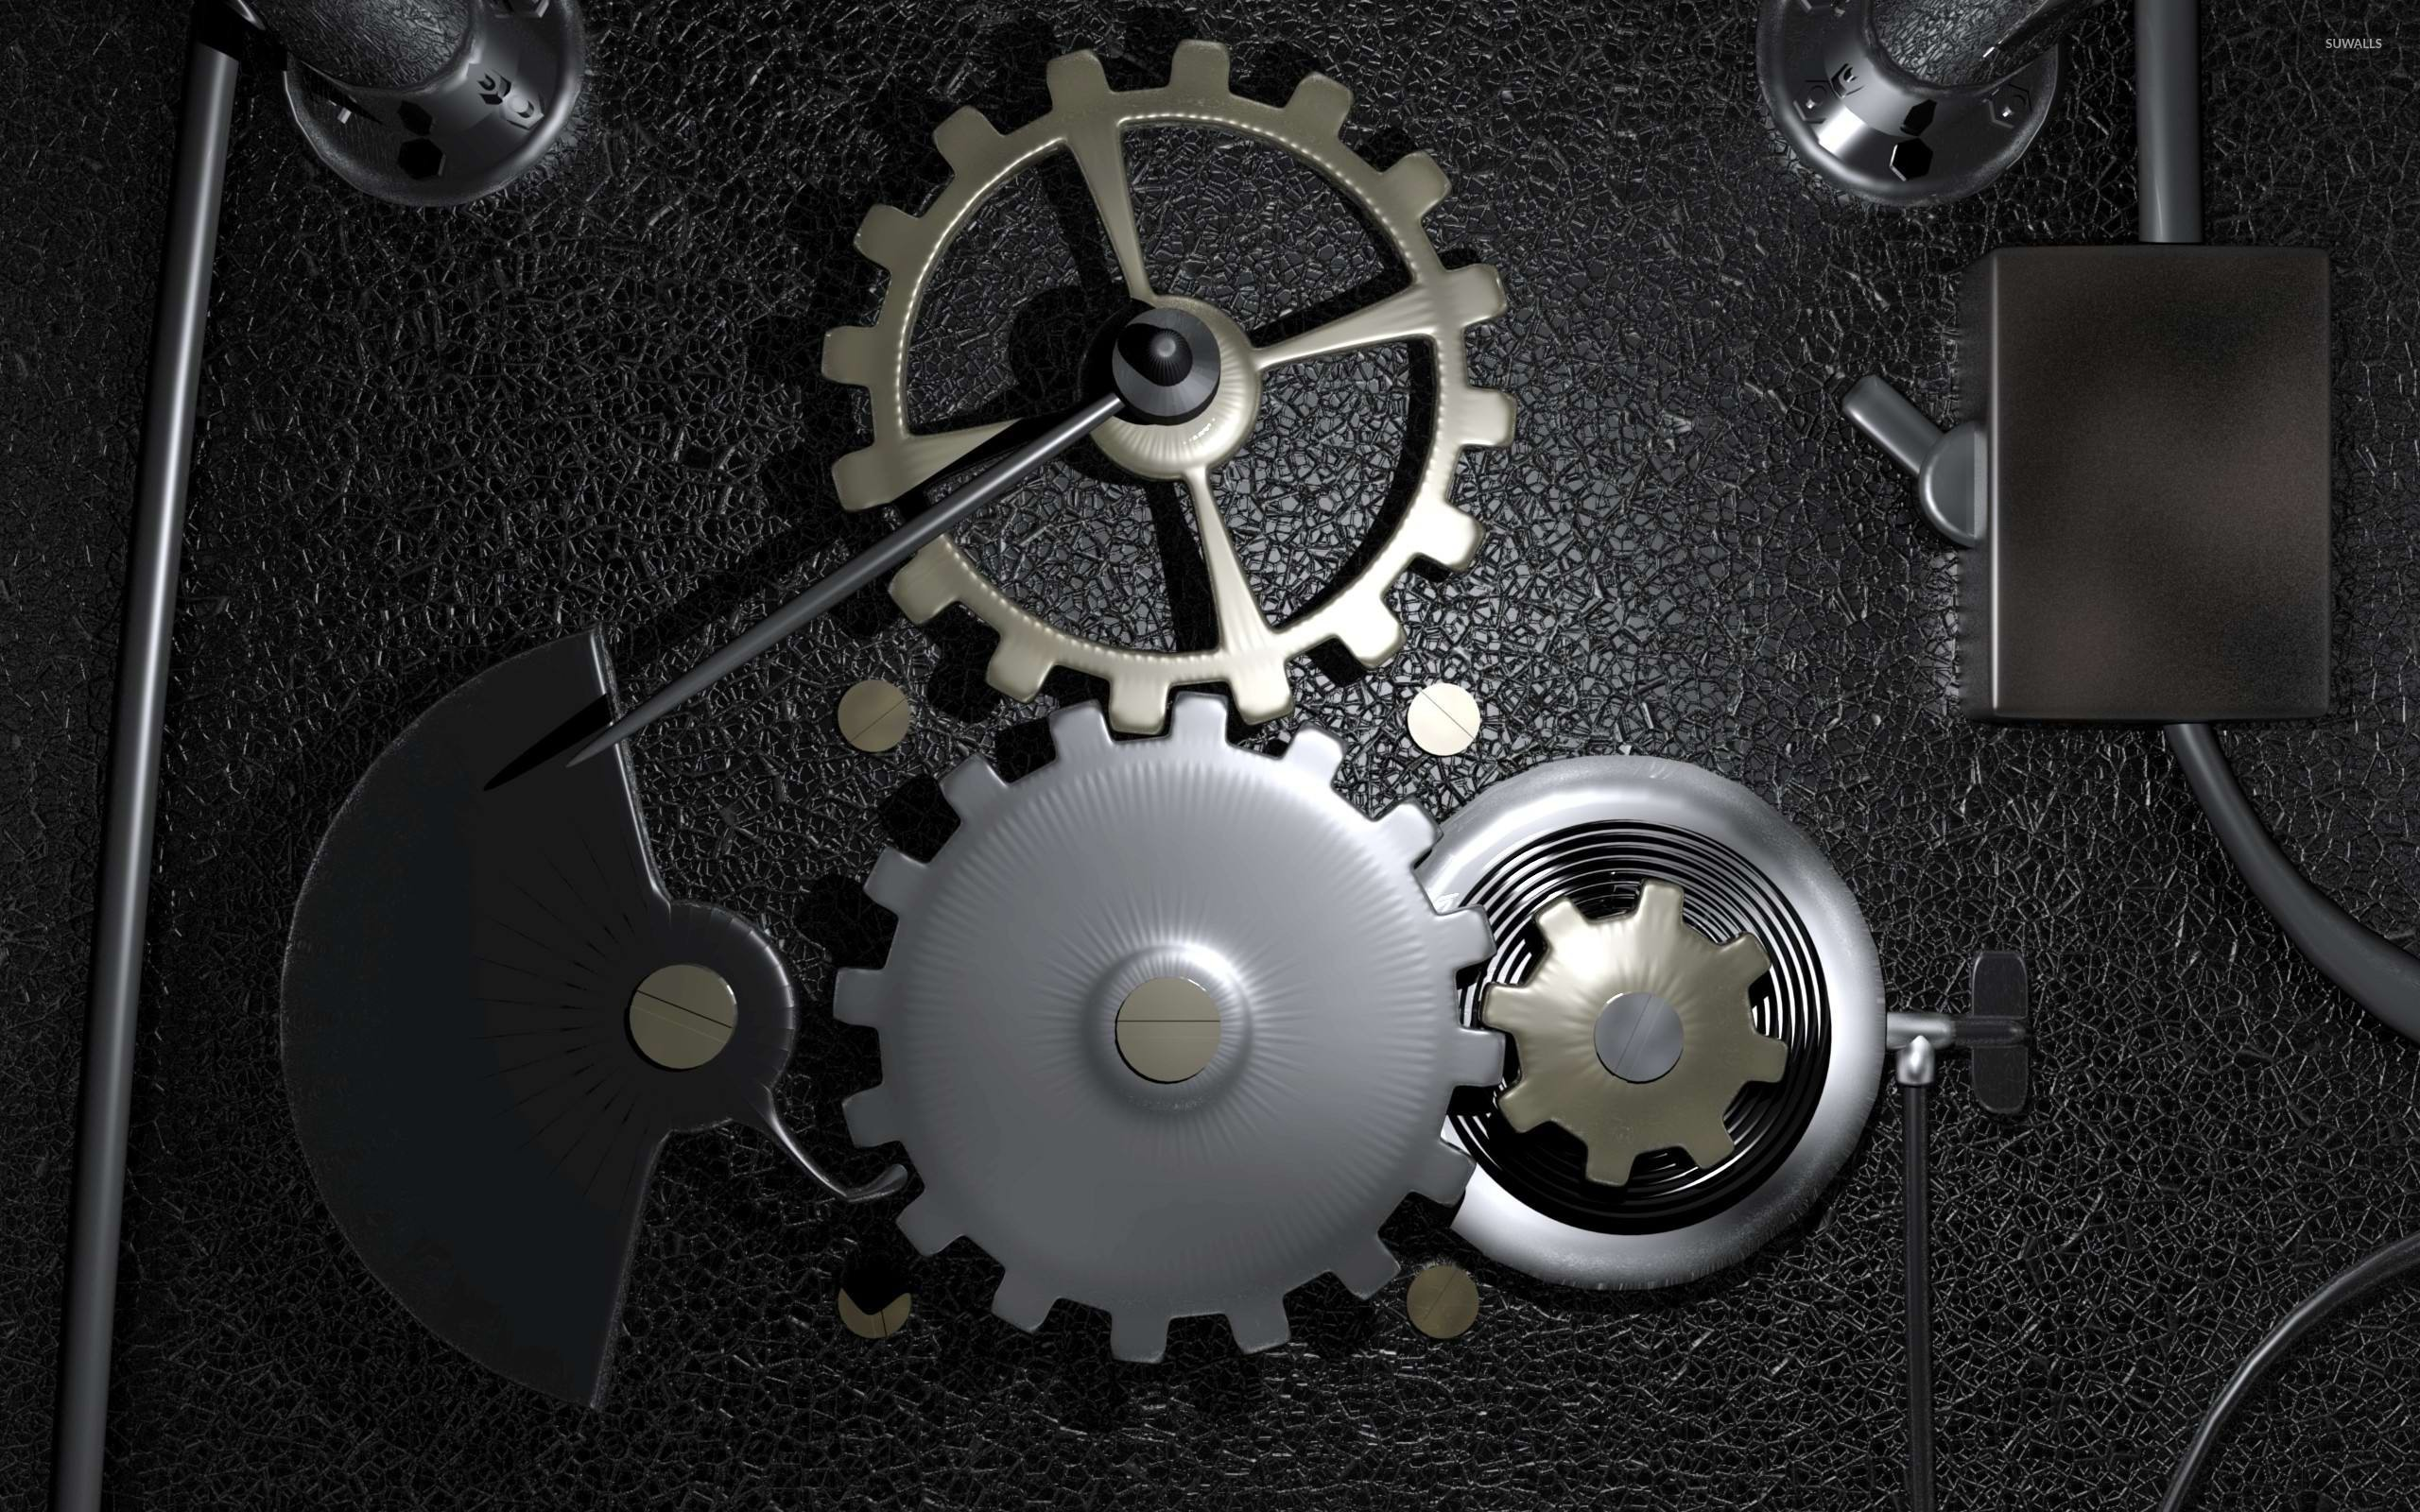 Gears in a machine wallpaper - Digital Art wallpapers - #23886